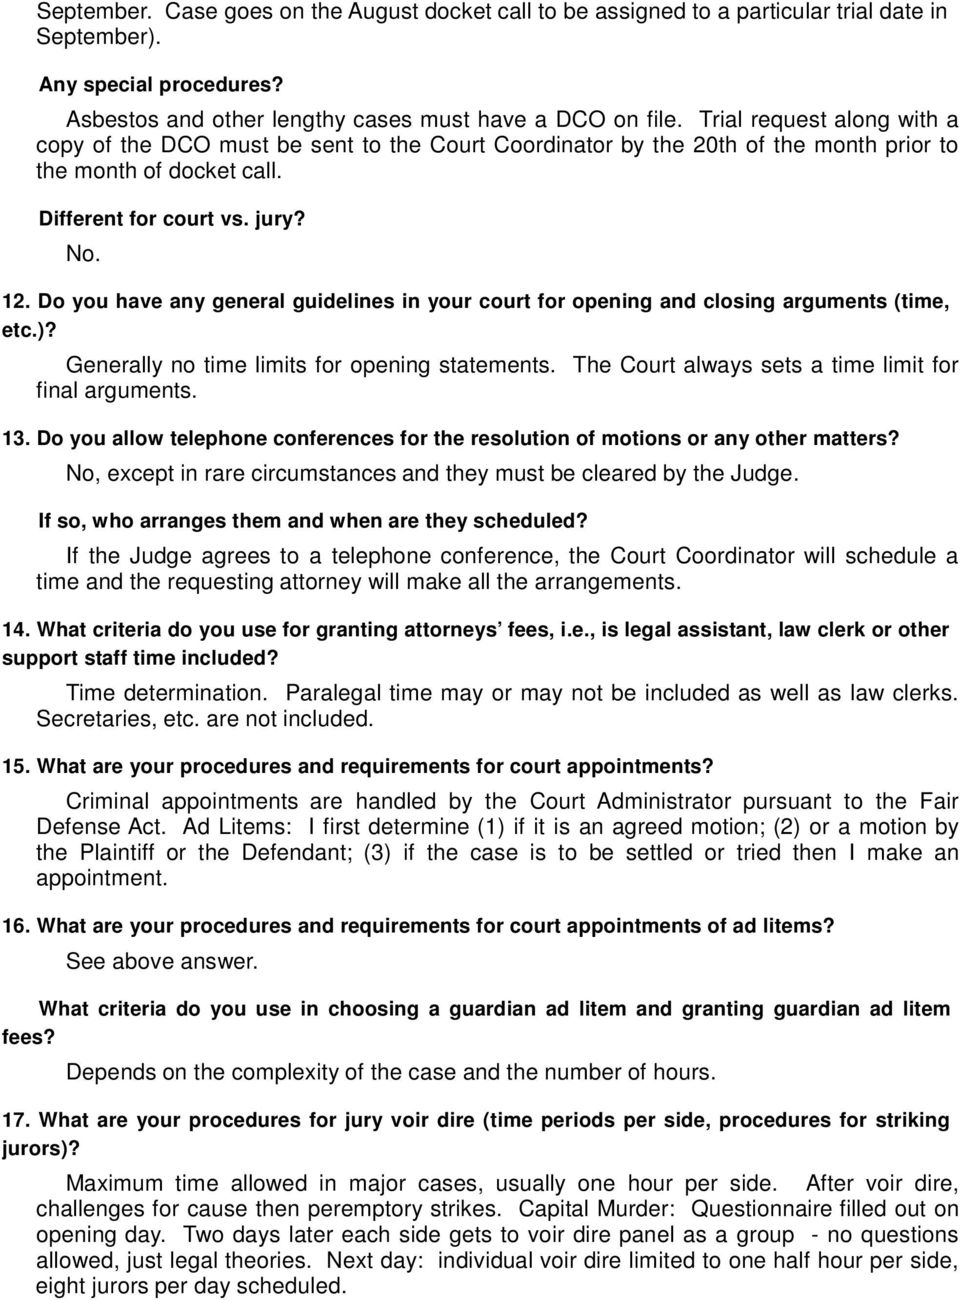 Do you have any general guidelines in your court for opening and closing arguments (time, etc.)? Generally no time limits for opening statements.